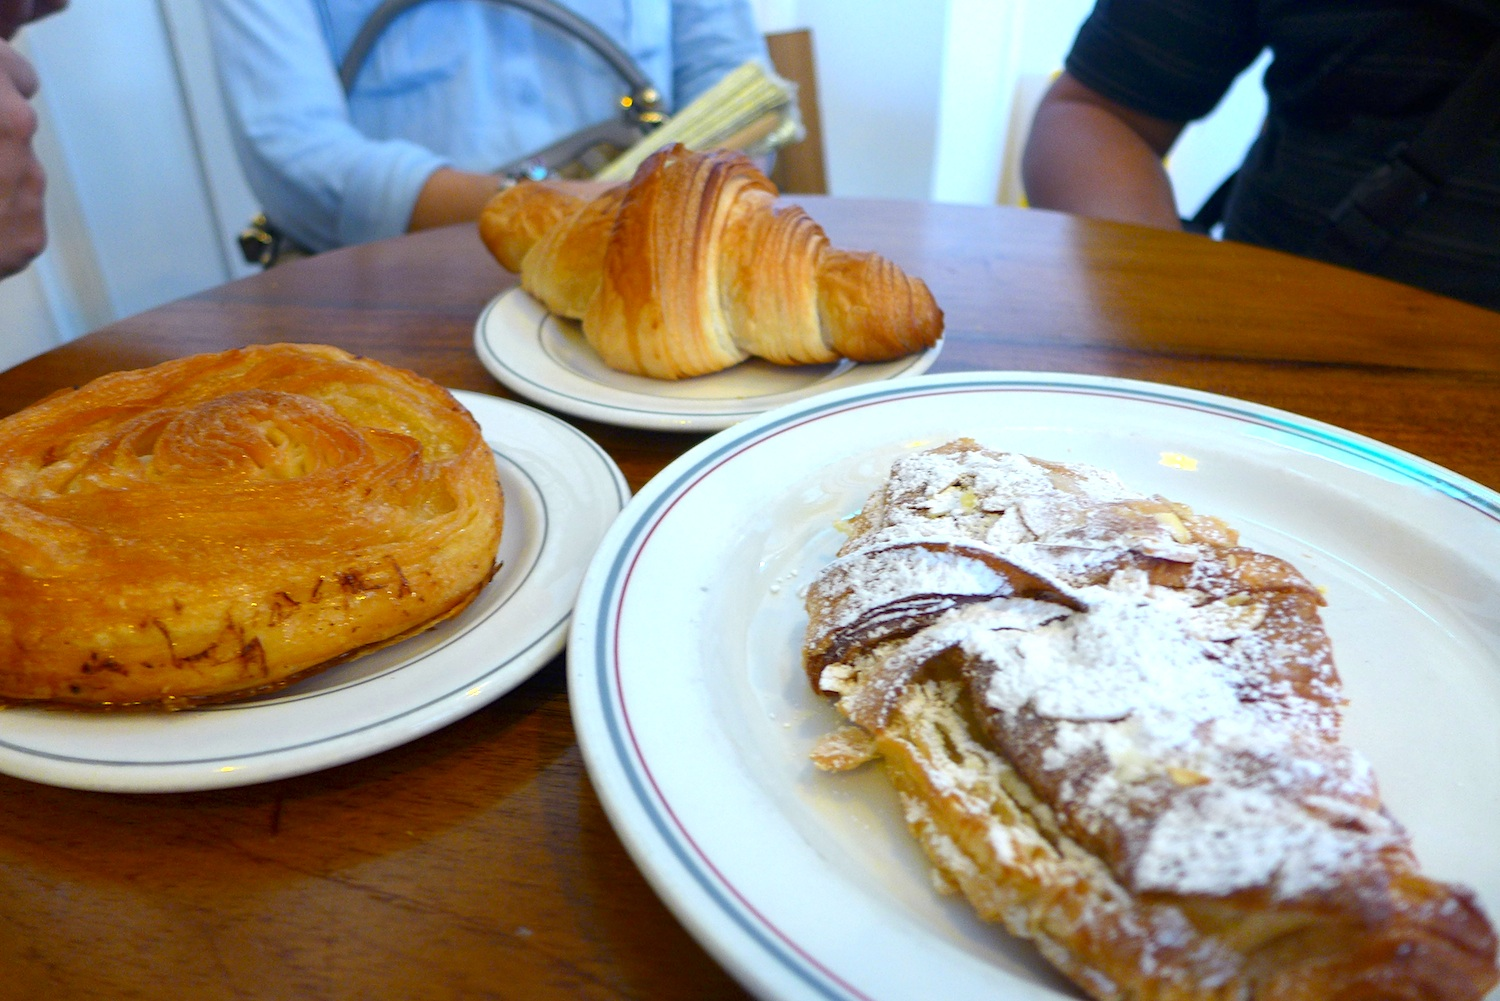 The Almond Croissant (SGD 3.20) and the Kouign Amann (SGD 3.50) won me over completely.